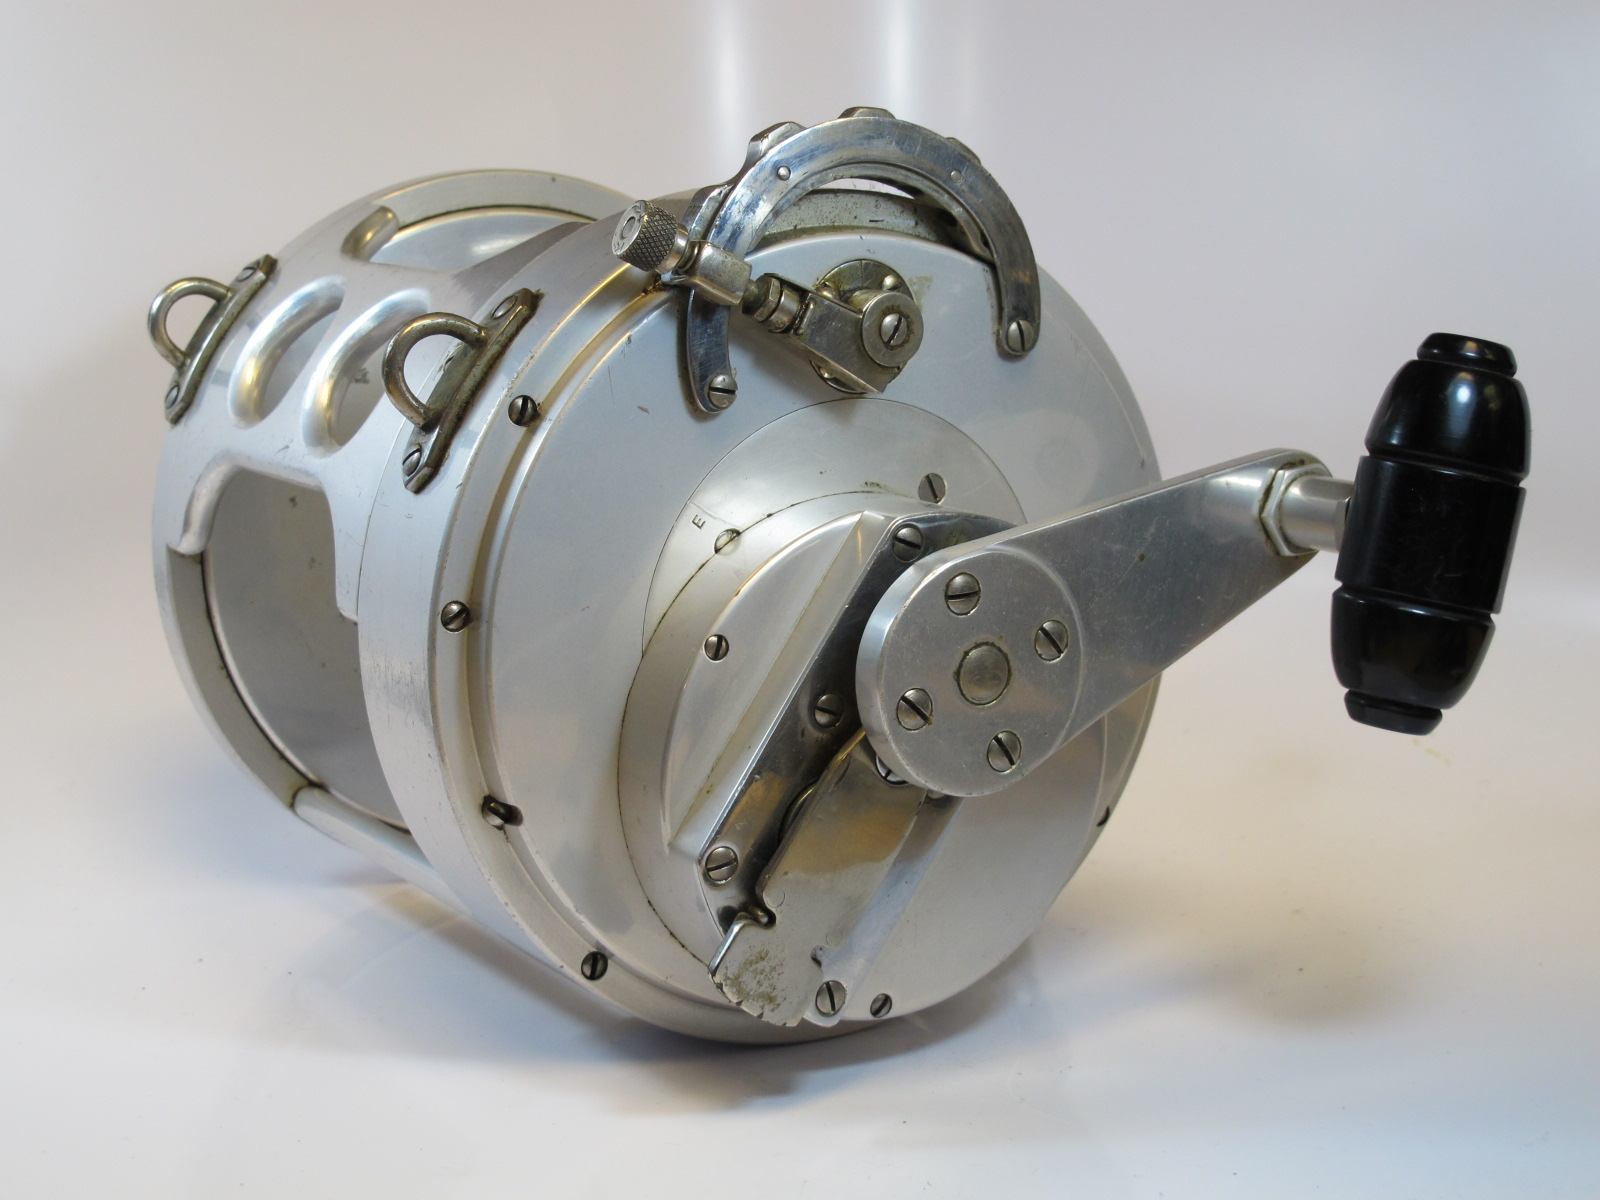 Big game fishing reels reel collection 2014 page 3 for Big game fishing reels